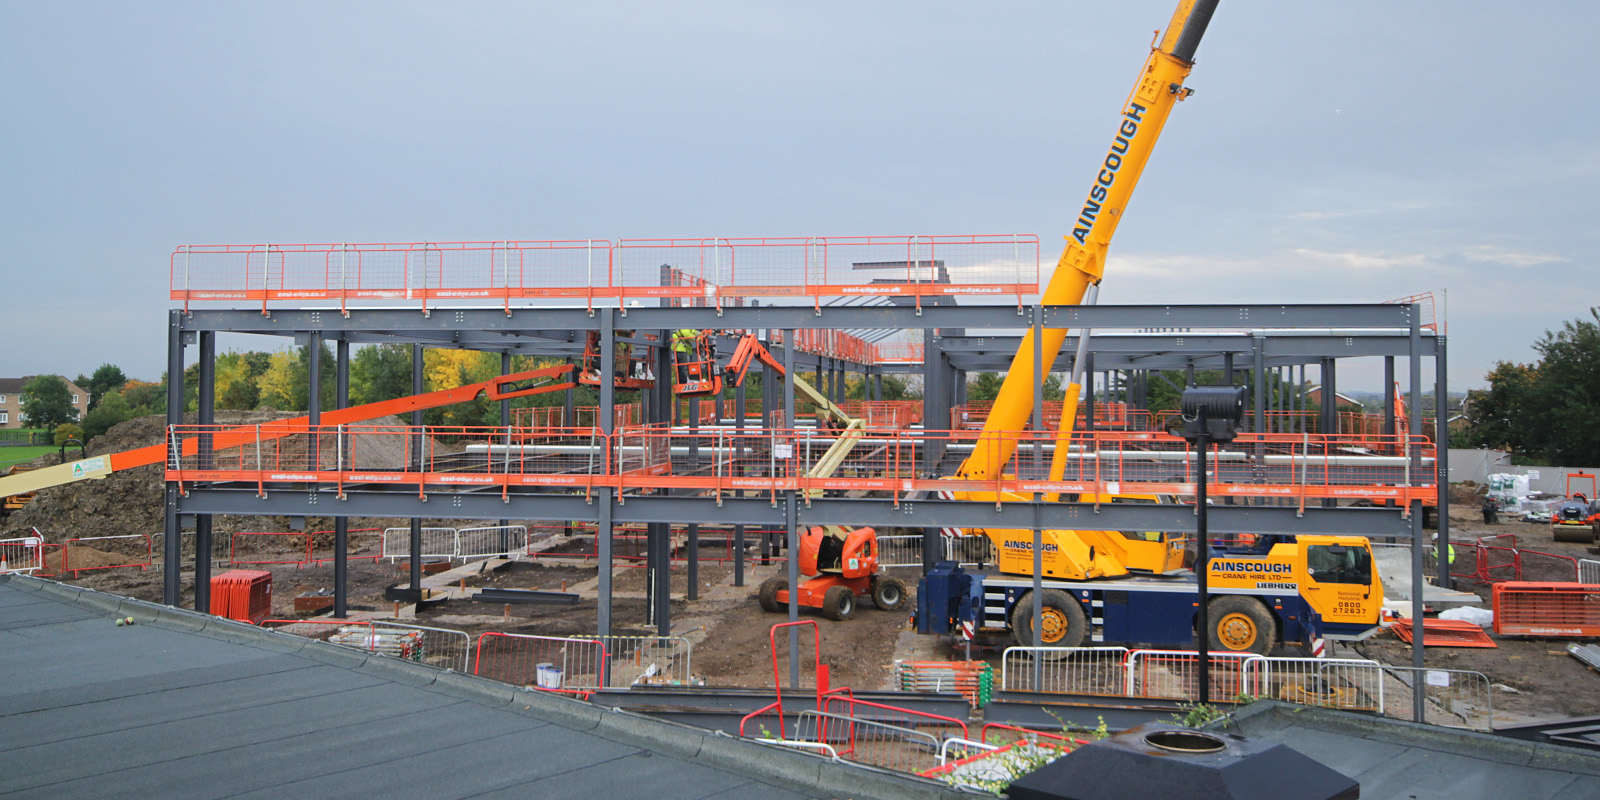 Thorndown Primary School construction